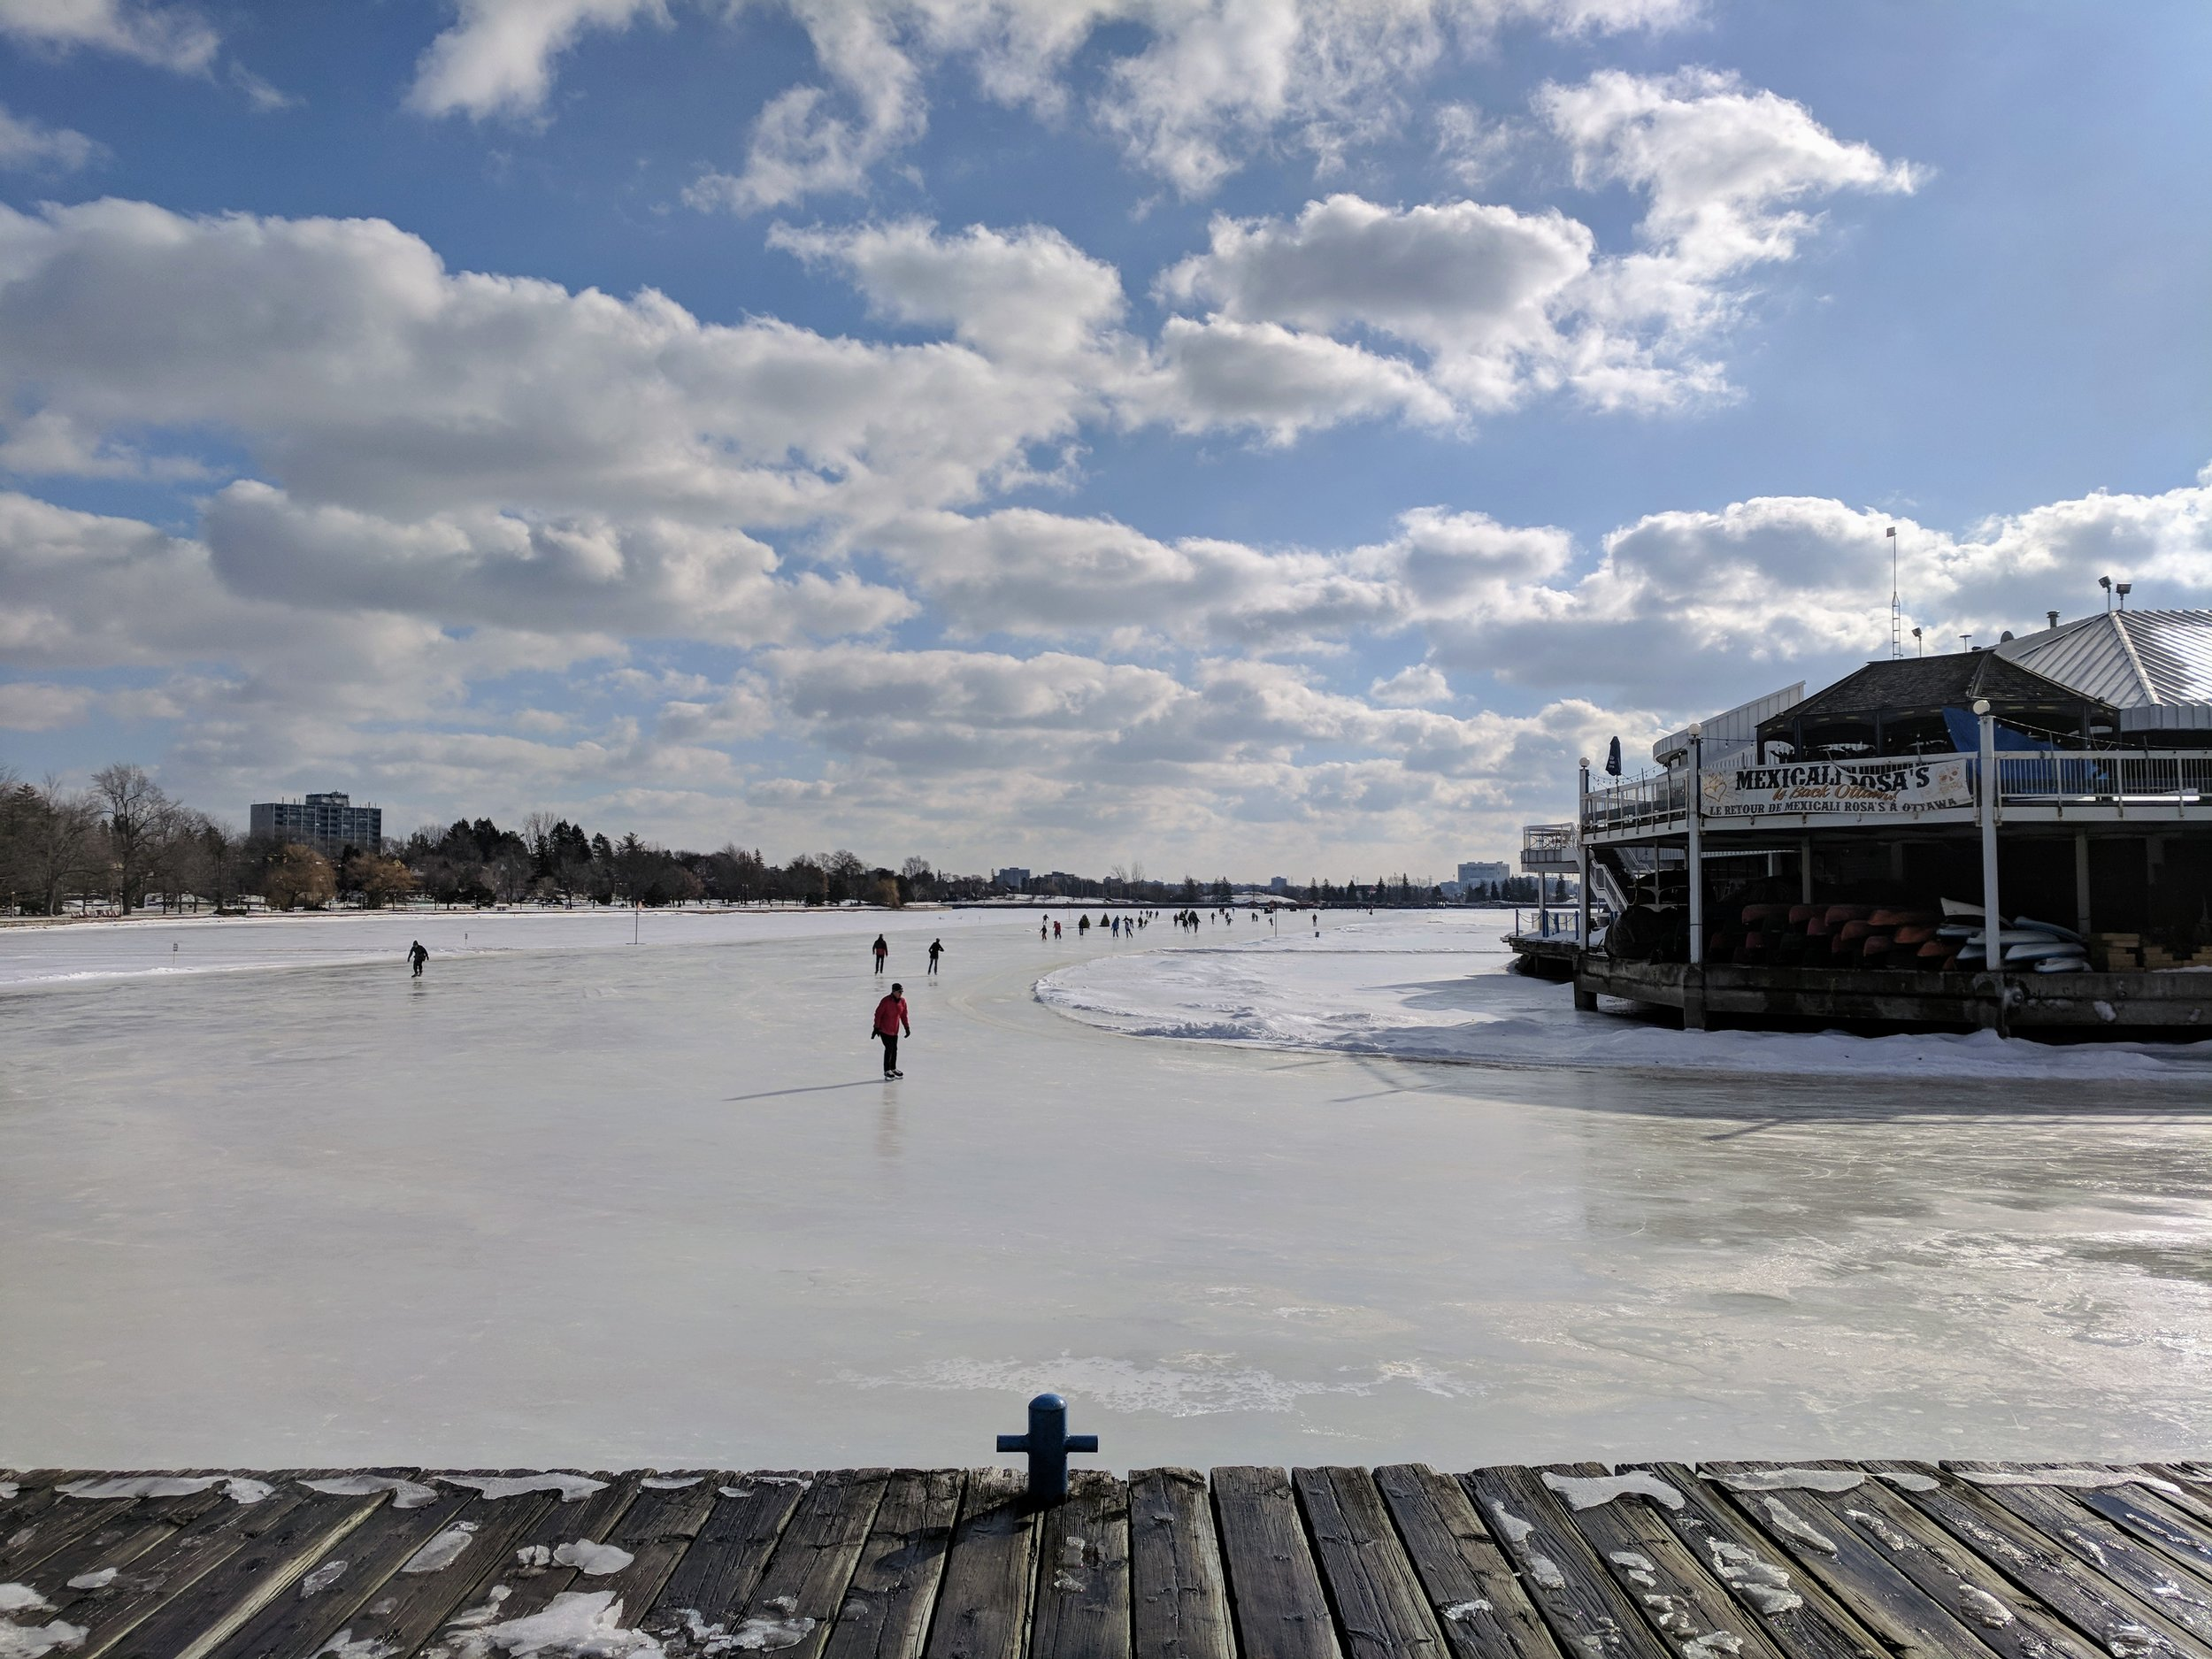 The skateway from Dow's Lake